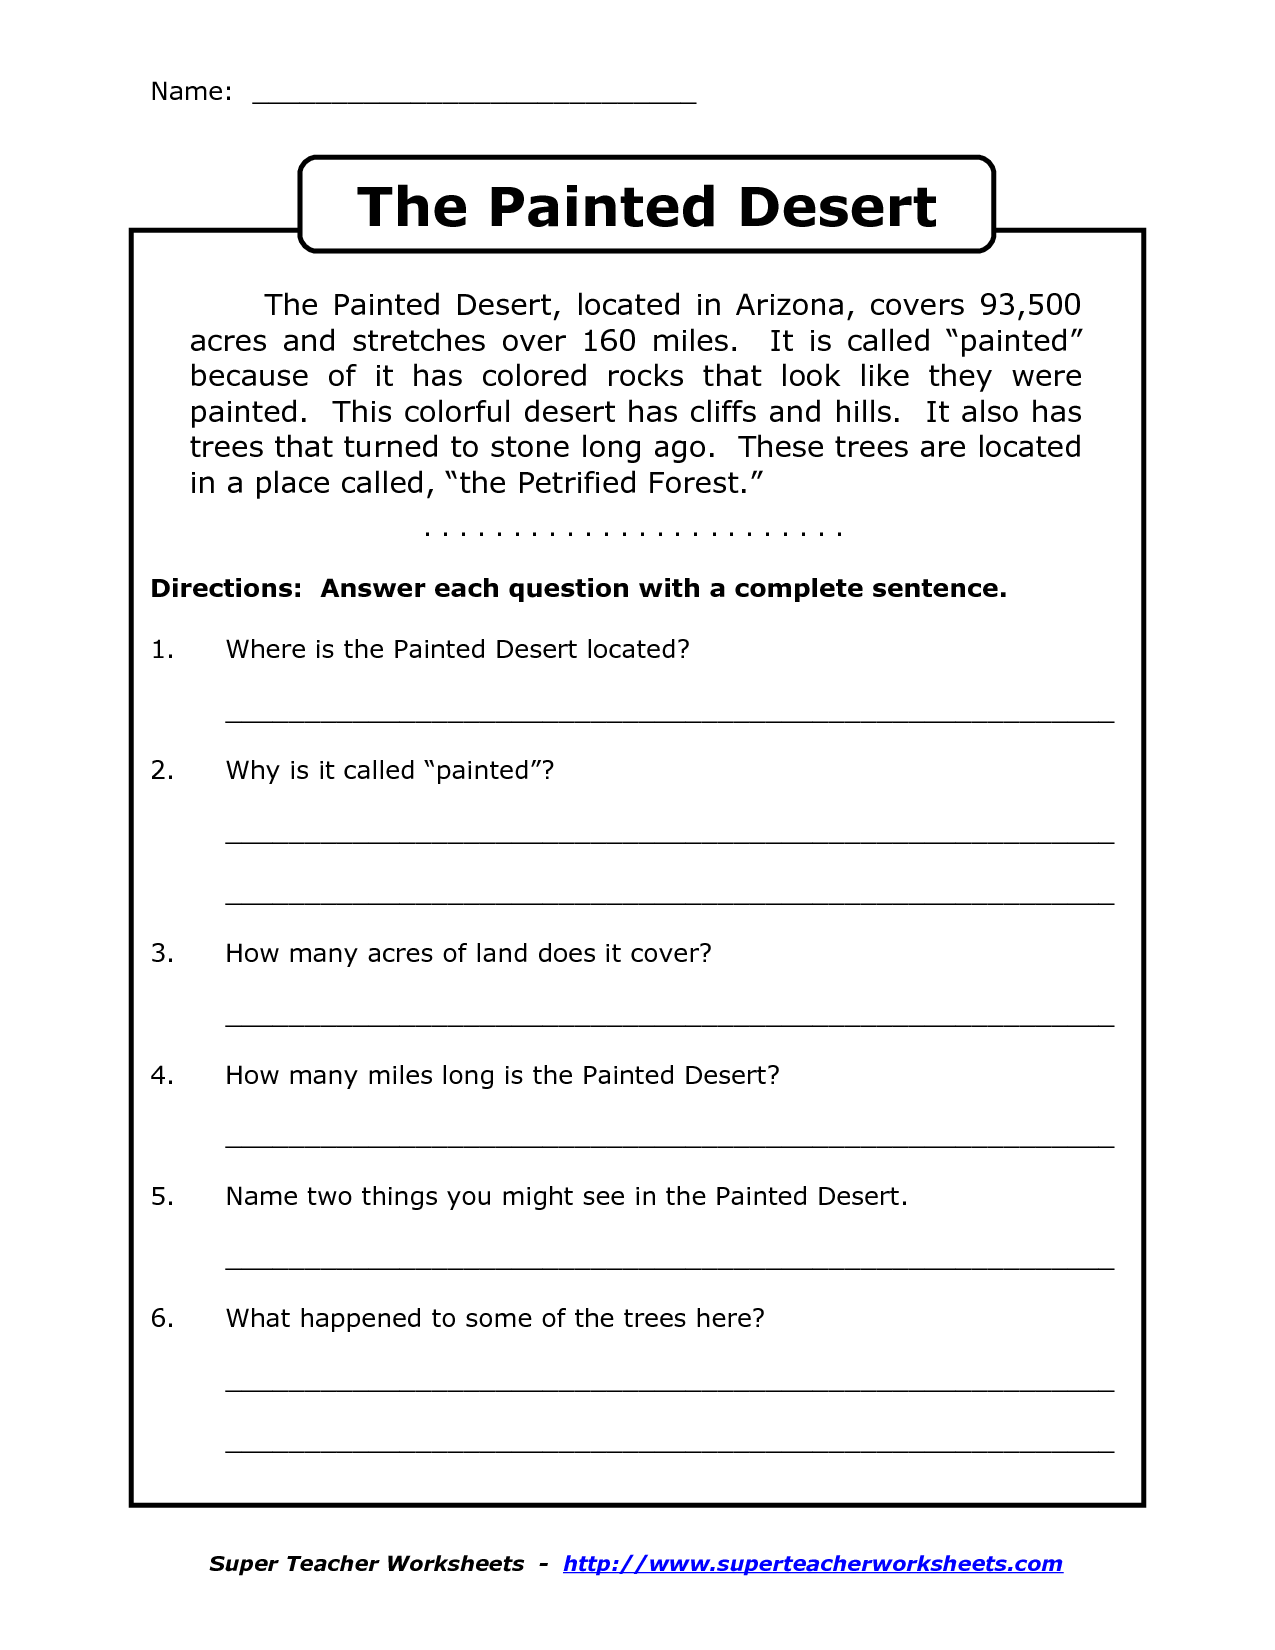 Worksheets Free Comprehension Worksheets For Grade 1 reading worksheets for 4th grade comprehension 3 name the painted desert